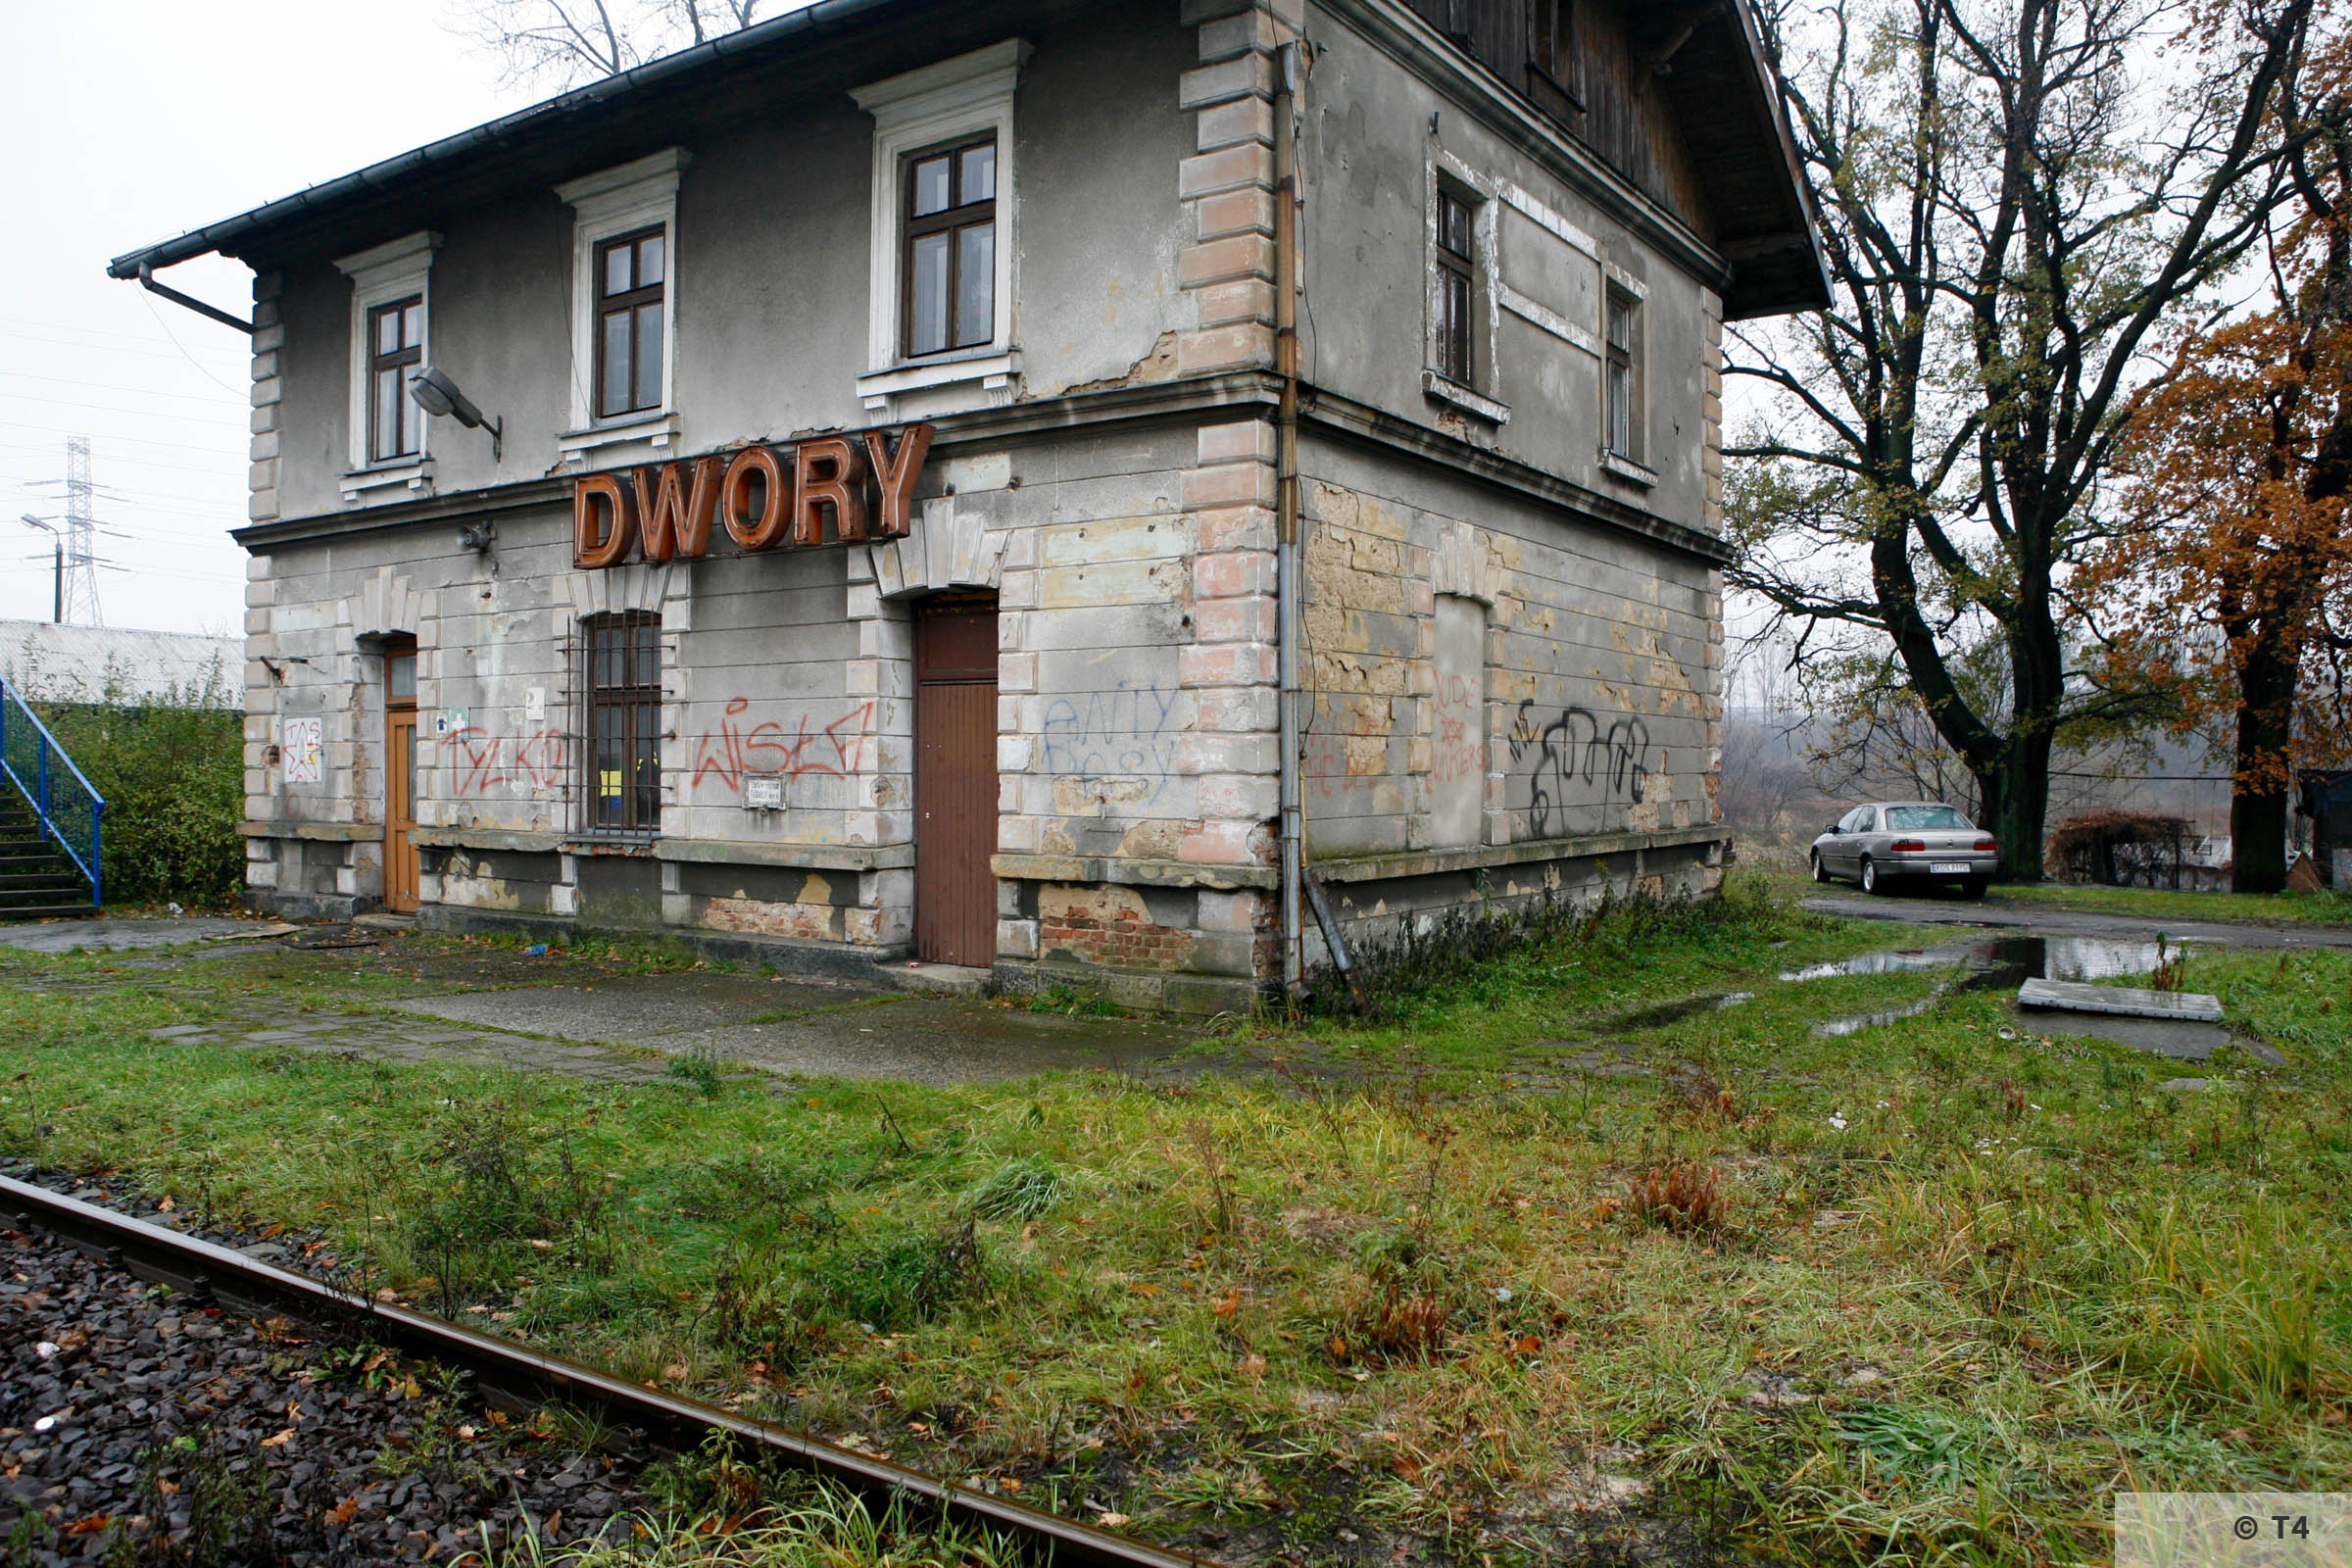 Dwory railway station. 2006 T4 4163